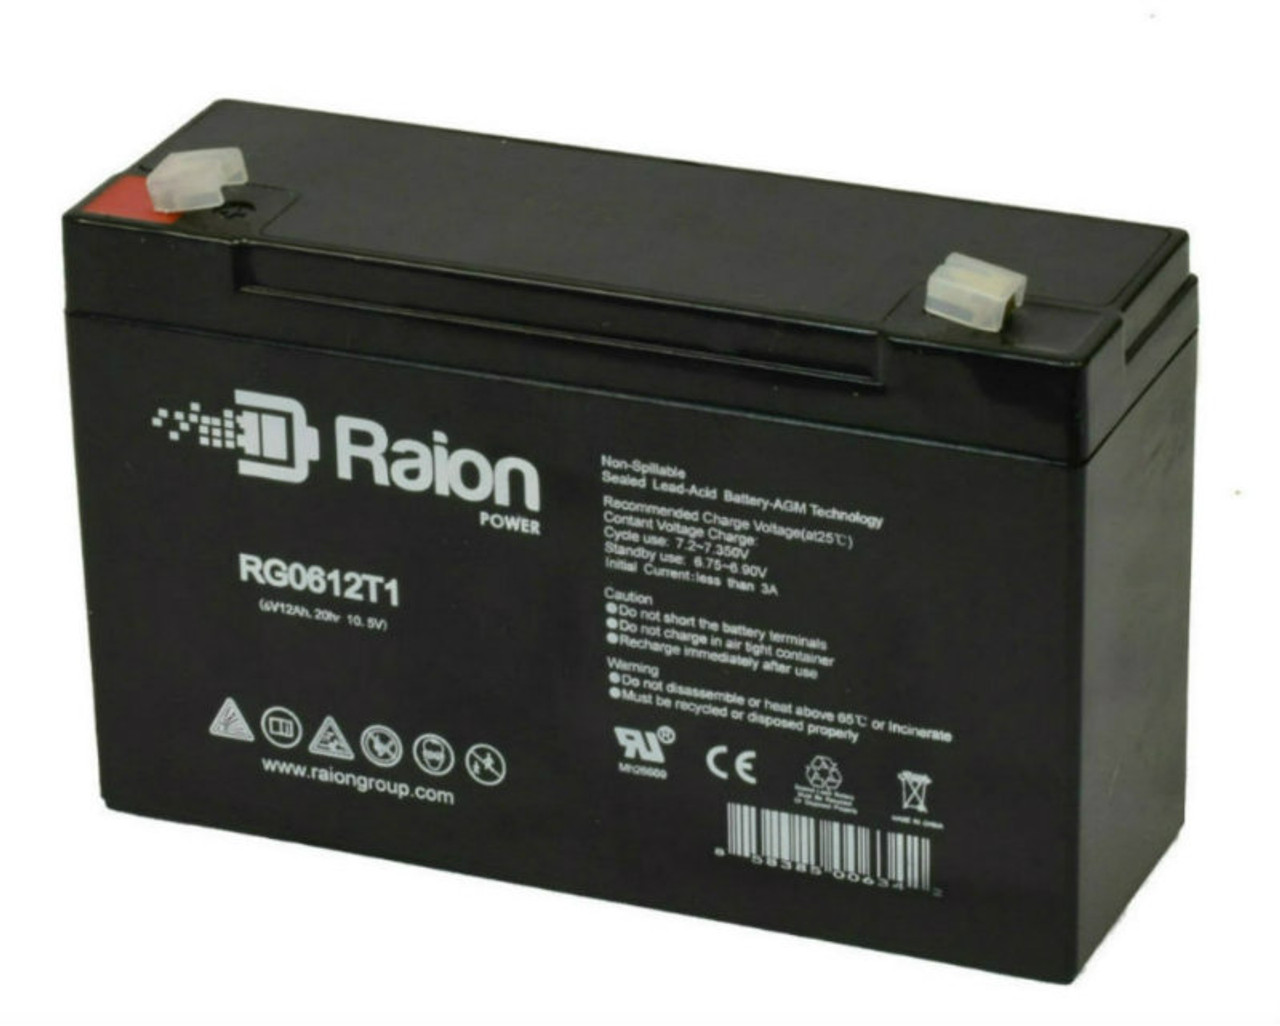 Raion Power RG06120T1 Replacement Battery Pack for Holophane EH6 emergency light